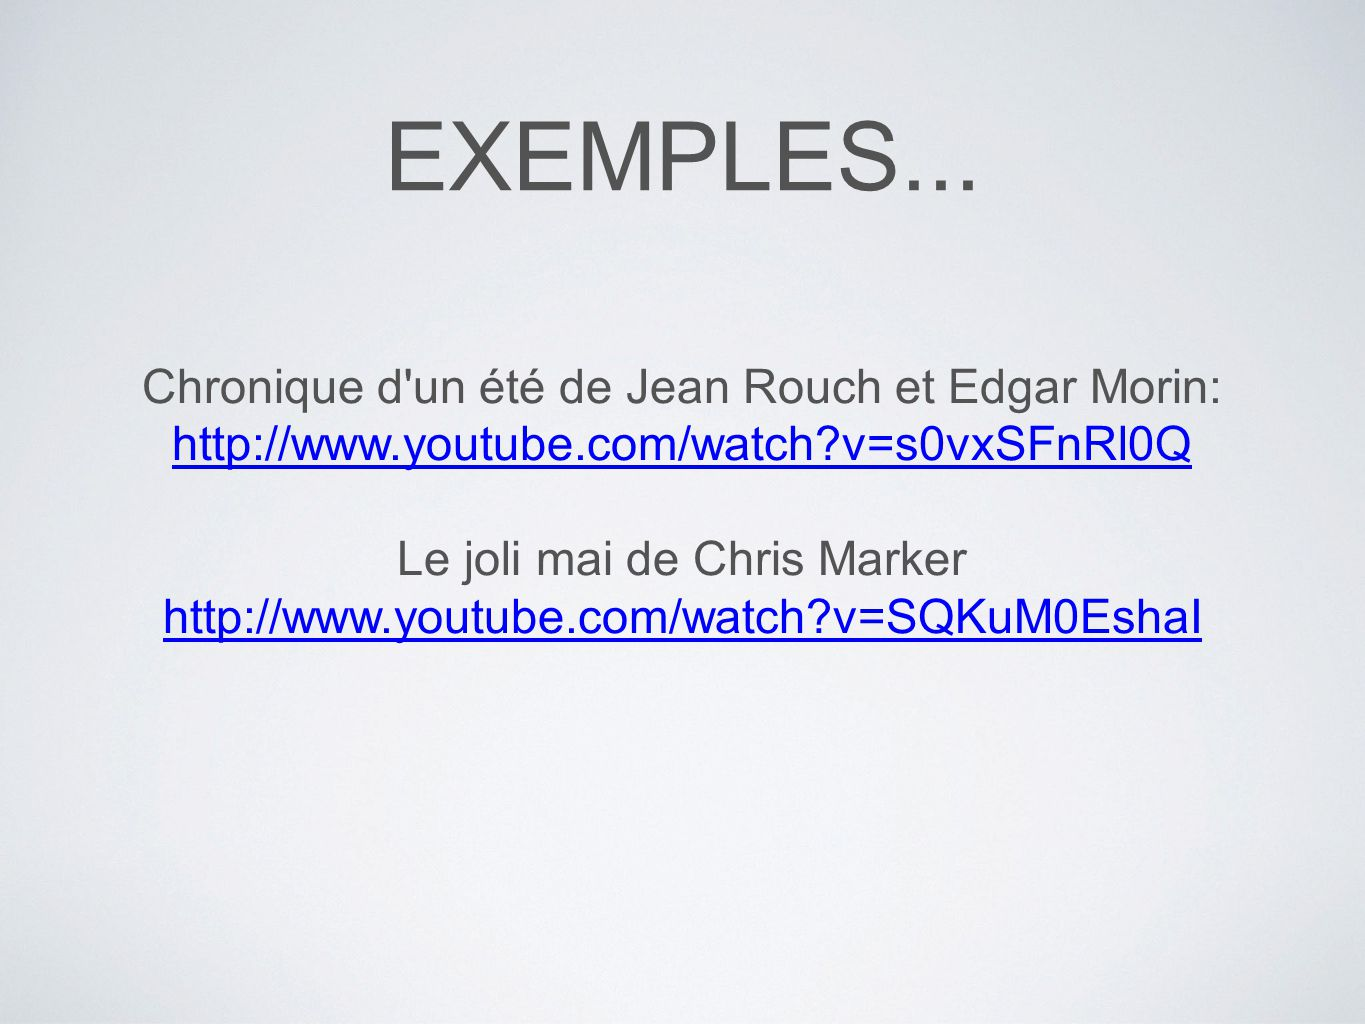 EXEMPLES... Chronique d'un été de Jean Rouch et Edgar Morin: http://www.youtube.com/watch?v=s0vxSFnRl0Q Le joli mai de Chris Marker http://www.youtube